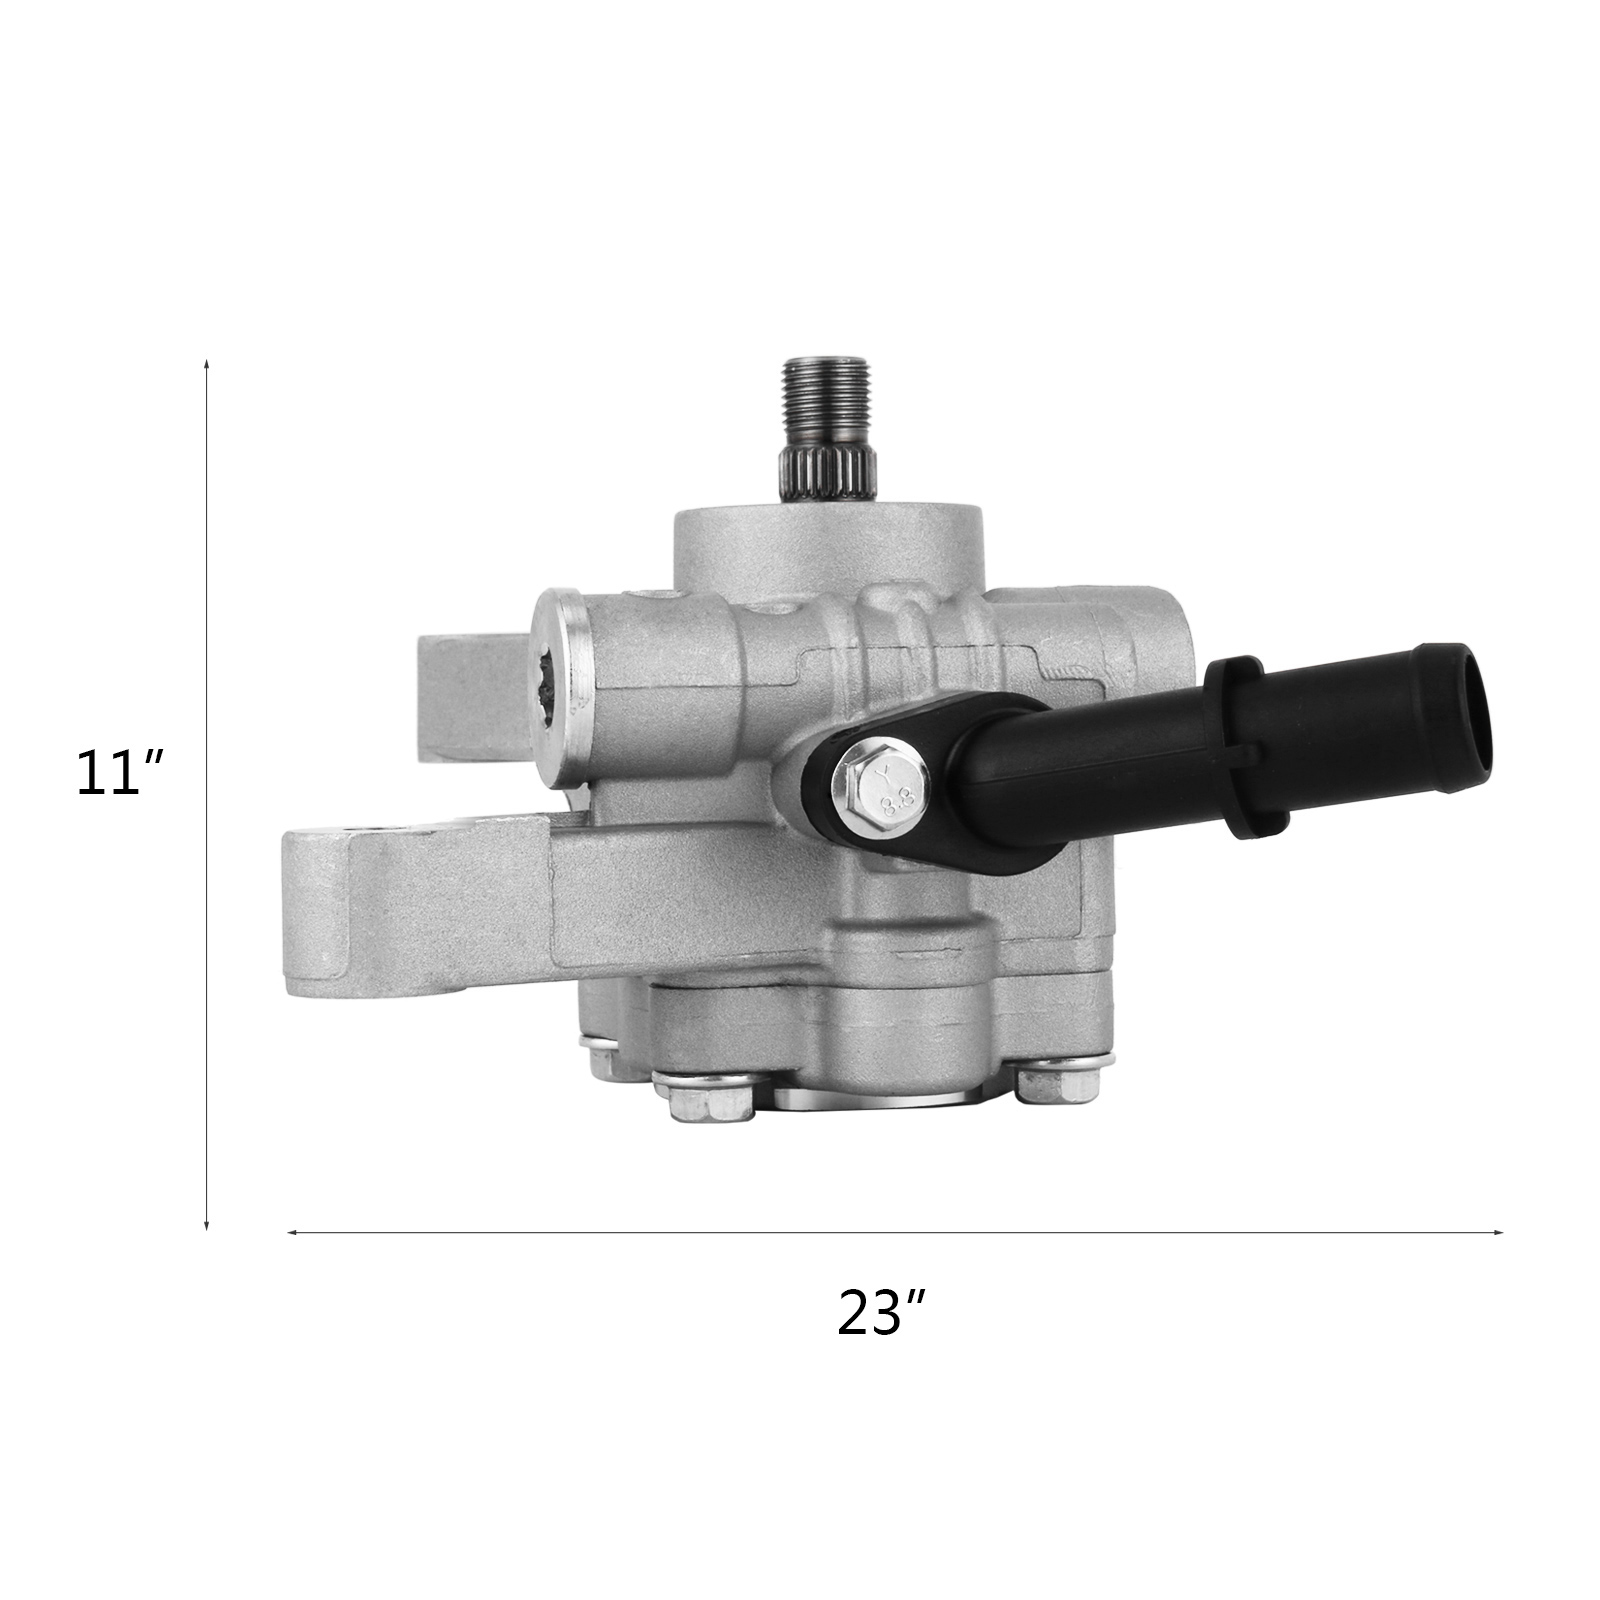 Acura Mdx Entertainment Package: Power Steering Pump For 2003-2013 Honda Odyssey Acura MDX